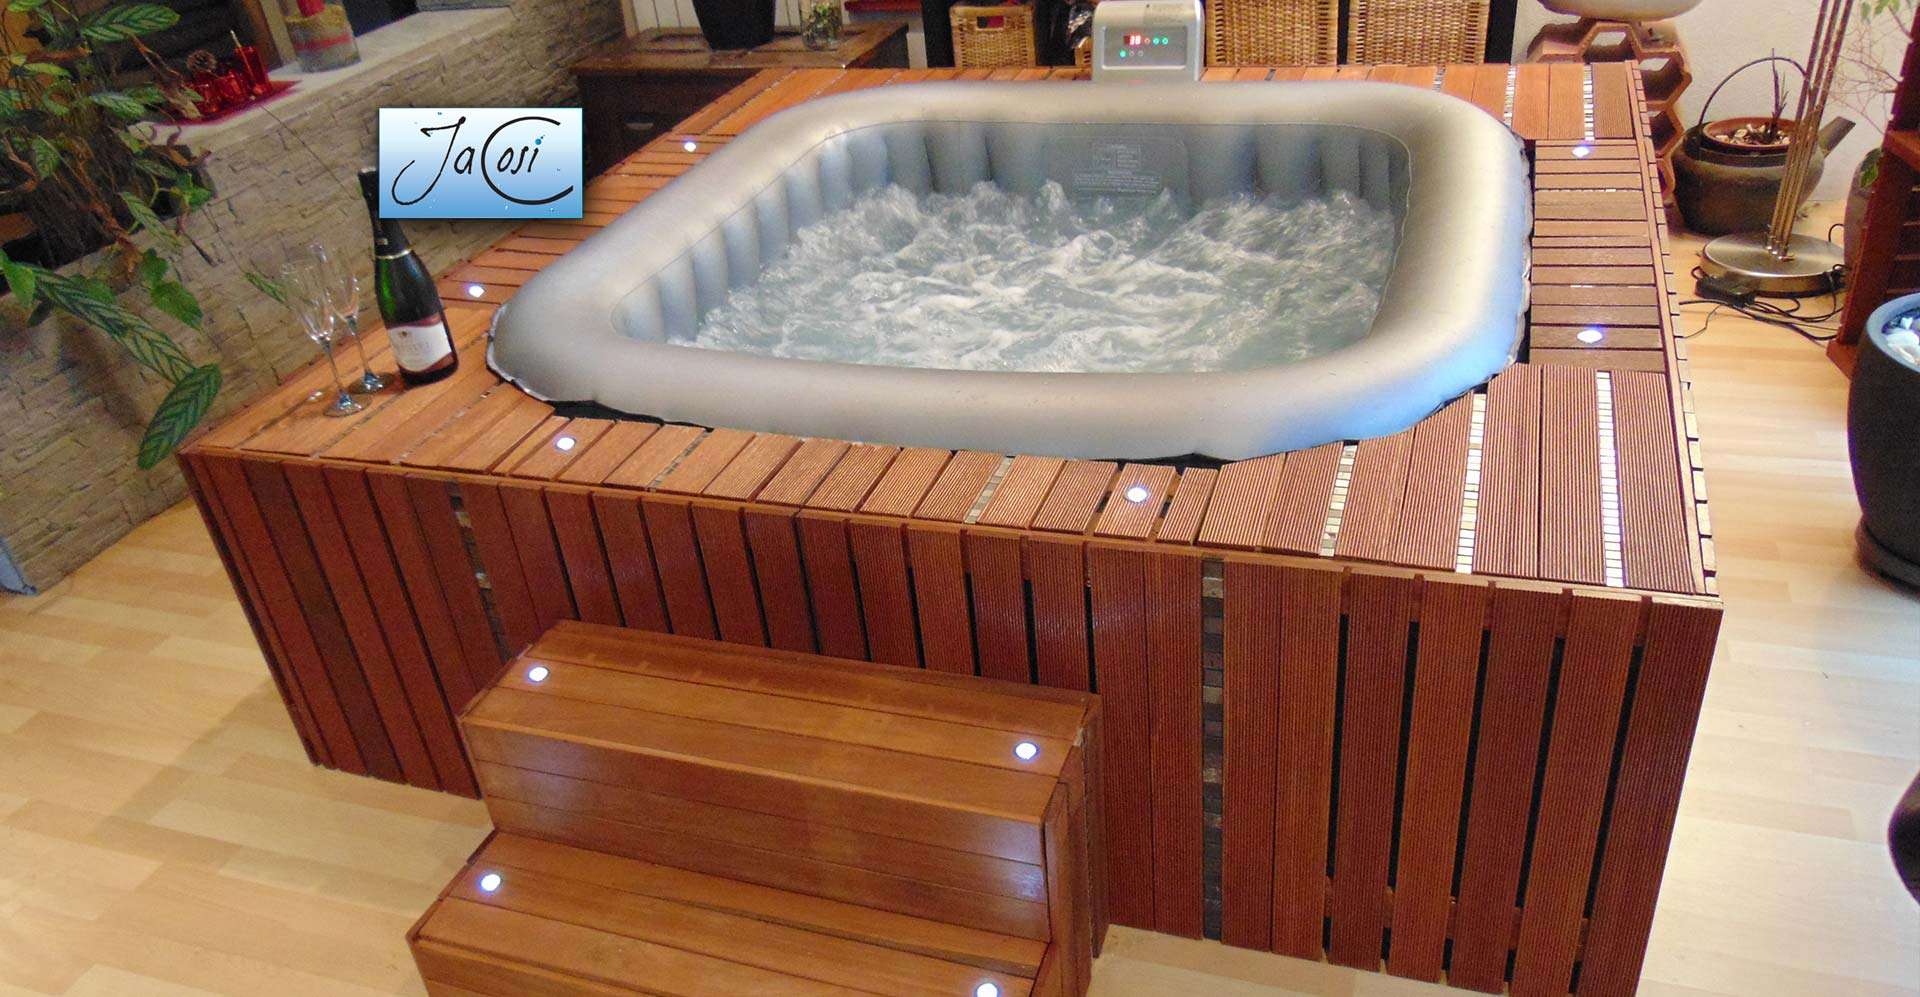 home-03a-JaCosi-Jacuzzi-transportable-demontable-sans-outils